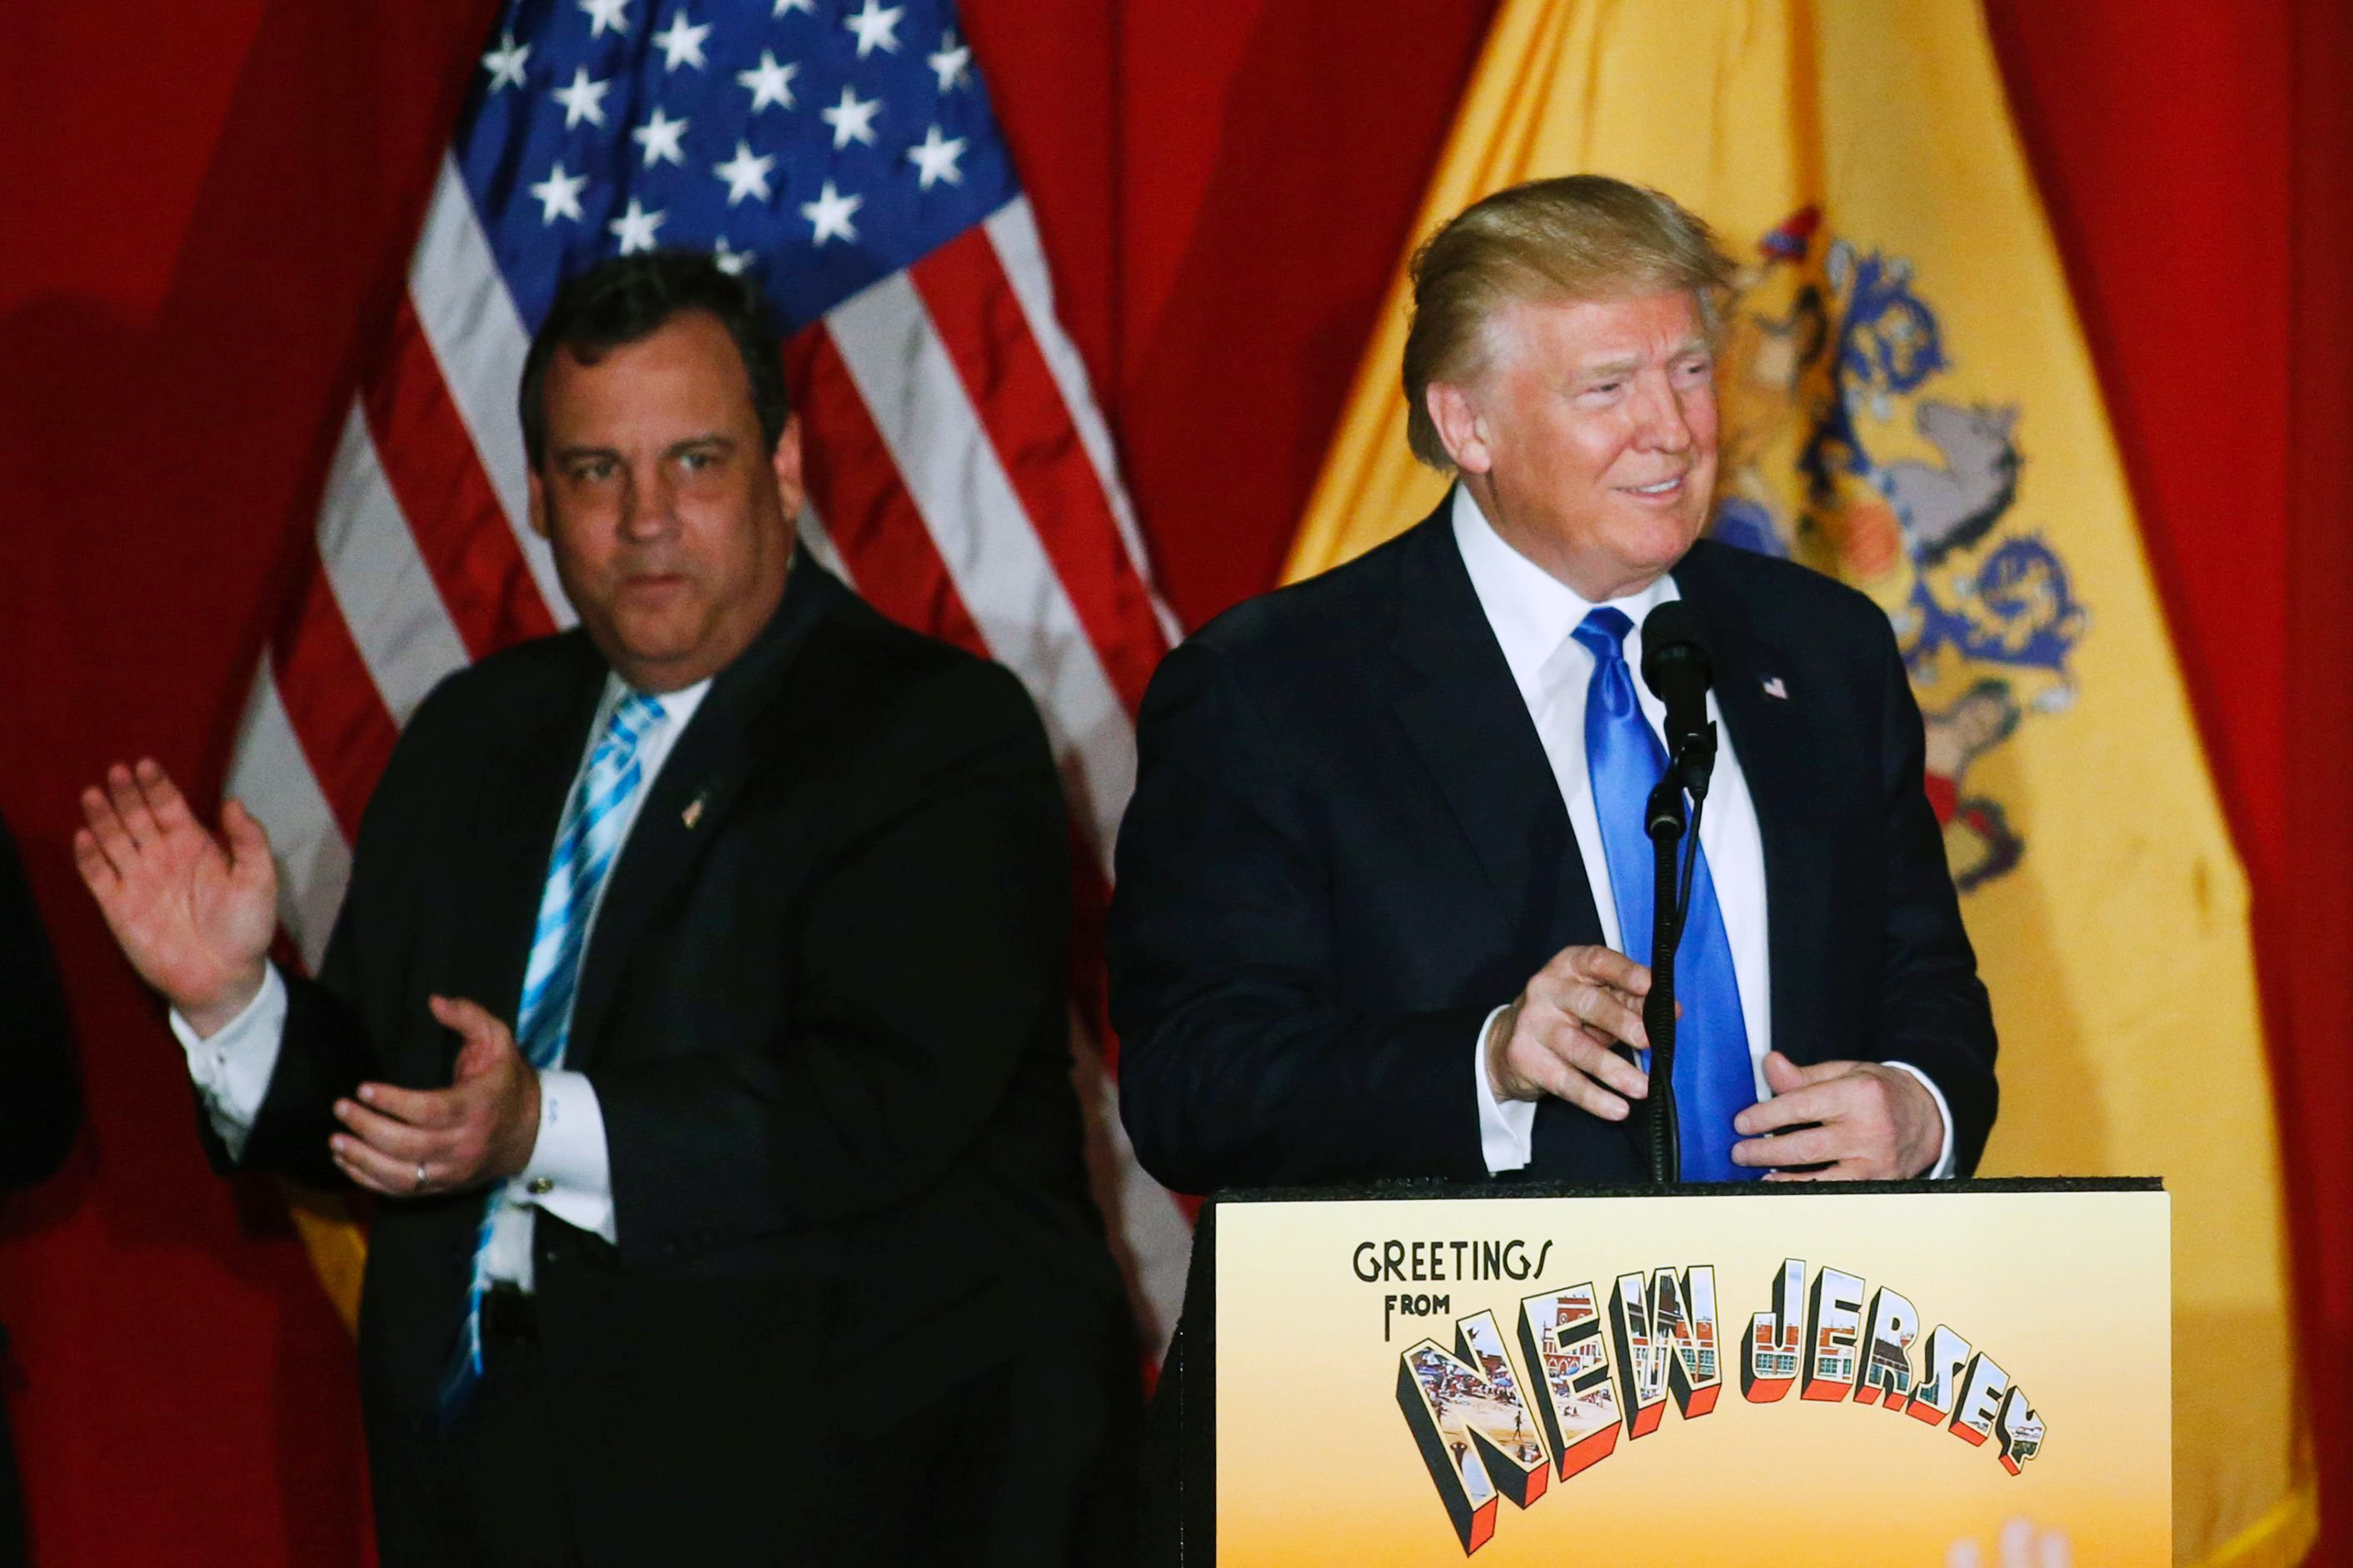 Republican presidential candidate Donald Trump and New Jersey Gov. Chris Christie greet the crowd at a fundraising event in Lawrenceville, N.J. on May 19, 2016.